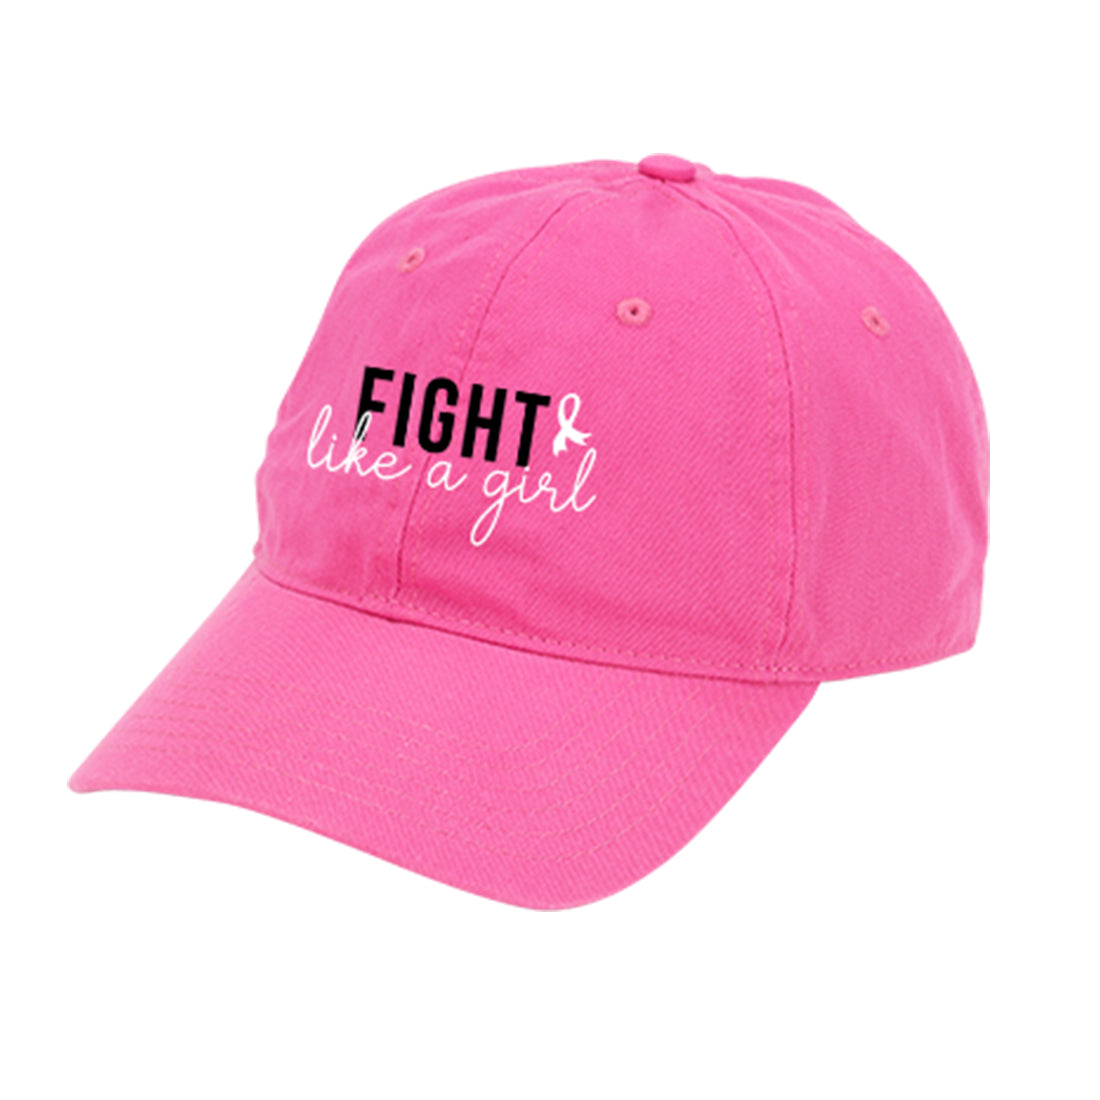 Breast Cancer Awareness Cap - Fight like a Girl,Hats - Dirt Road Divas Boutique